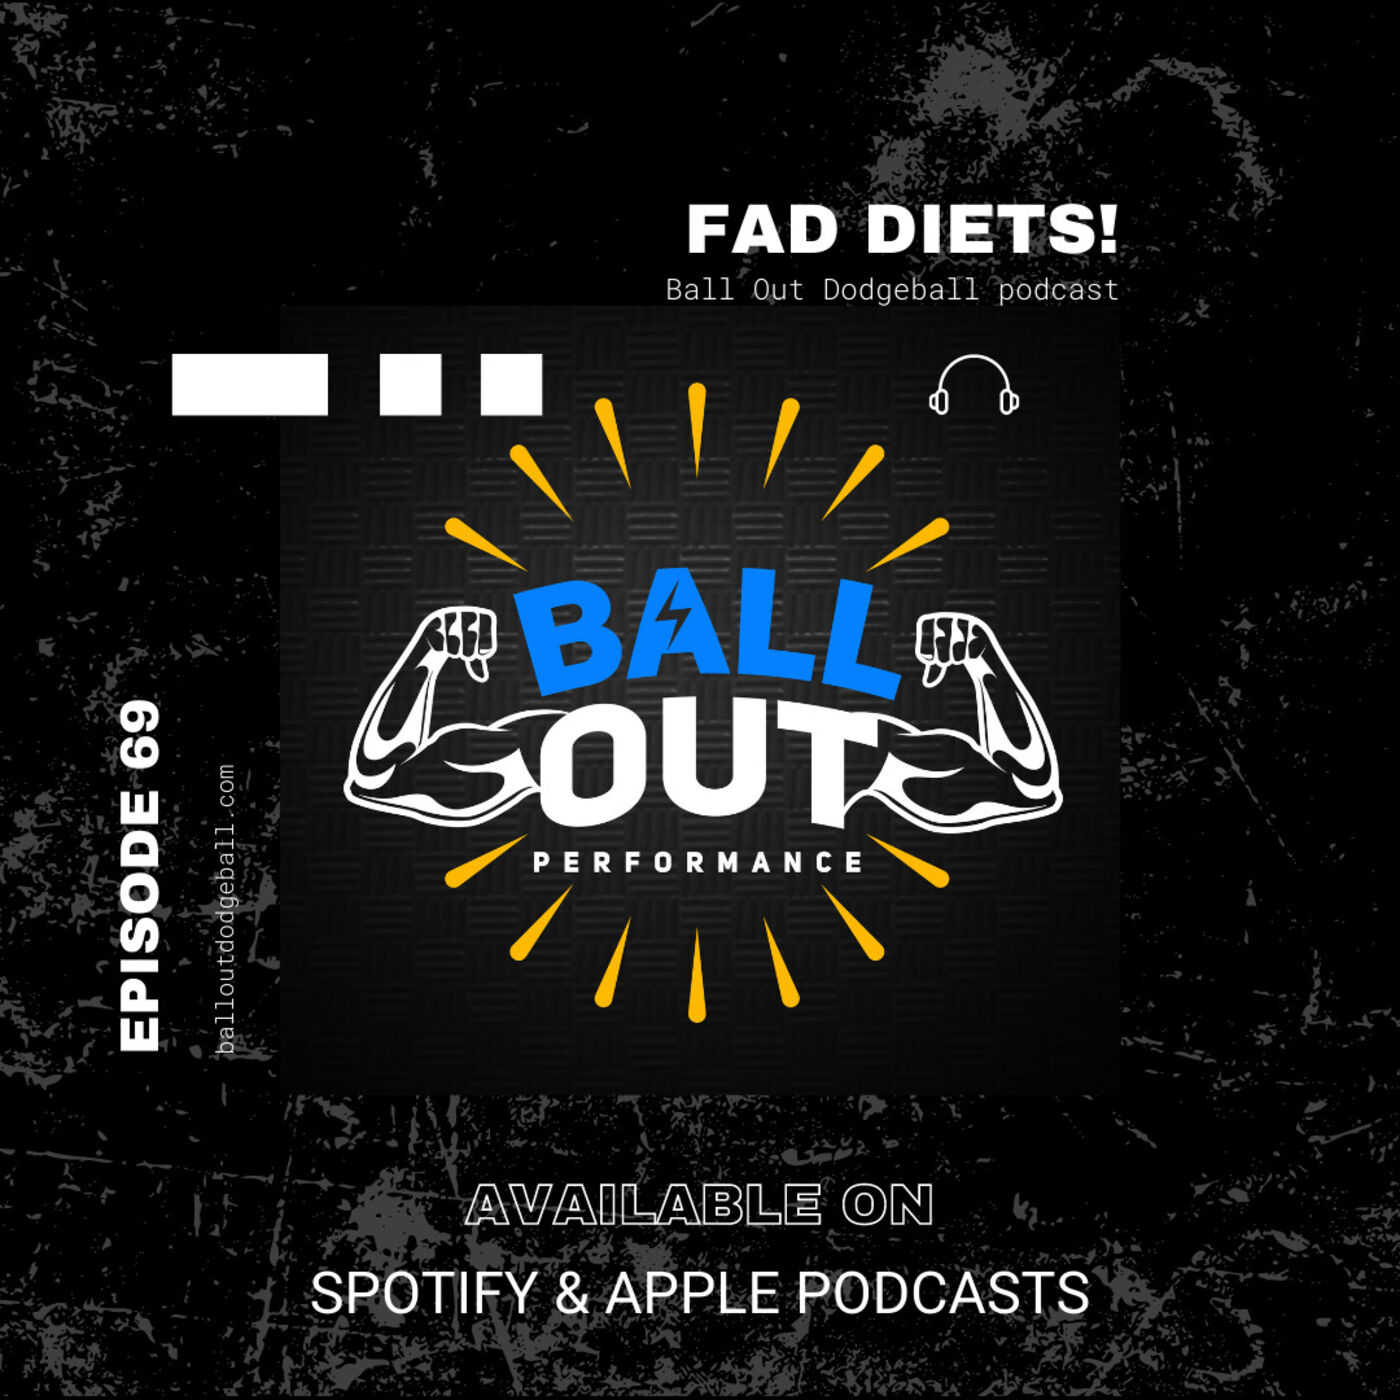 Ep #69: Fad Diets